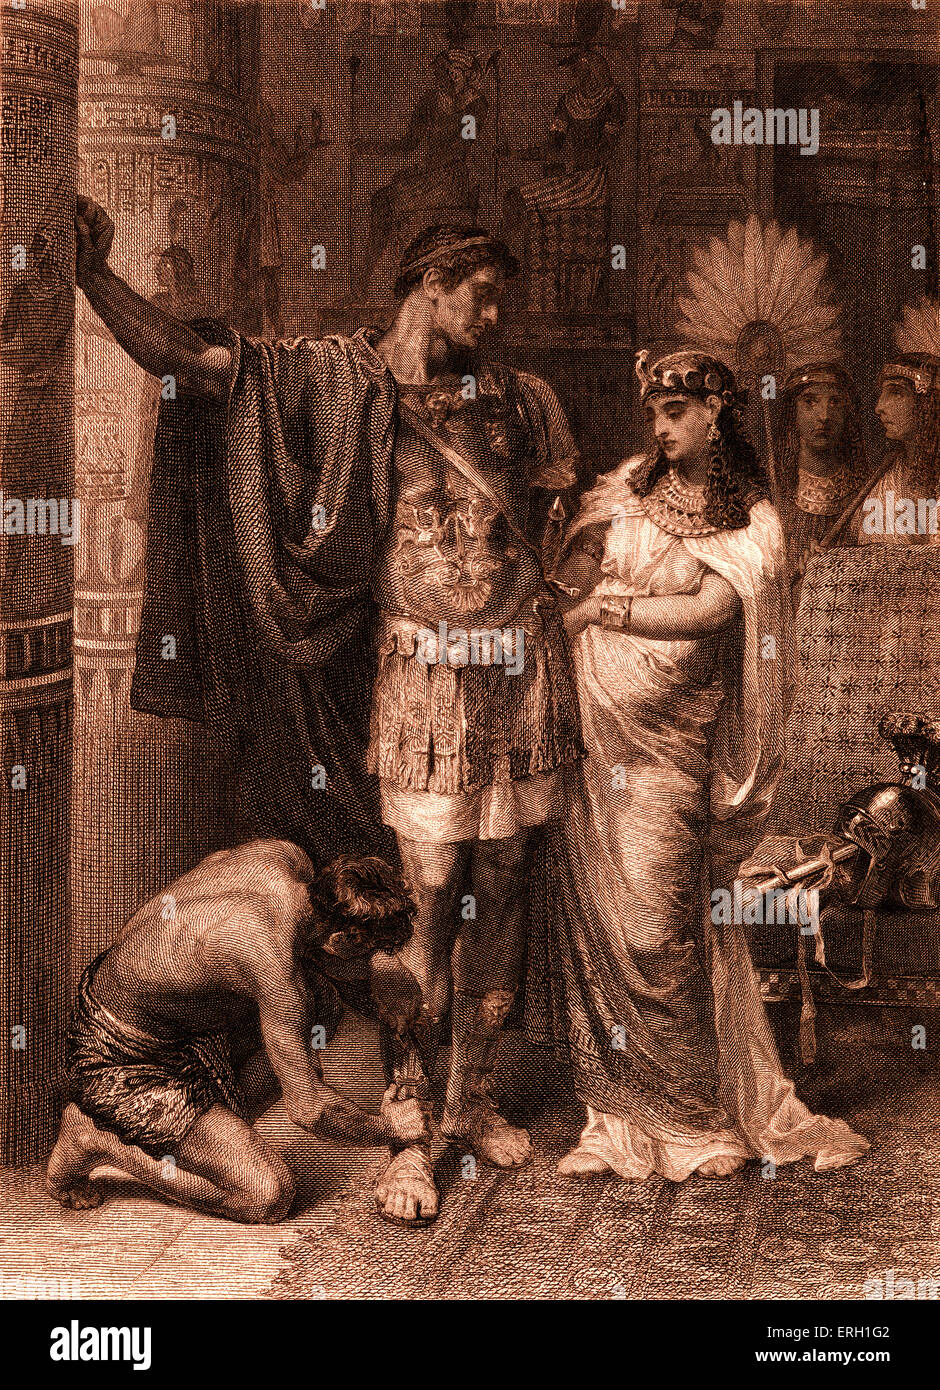 an analysis of the antony and cleopatra by shakespeare A summary of shakespeare's antony & cleopatra - a tragedy of love and duty antony & cleopatra written around 1606 is one of shakespeare's great historical love stories antony is captivated by cleopatra, queen of egypt.